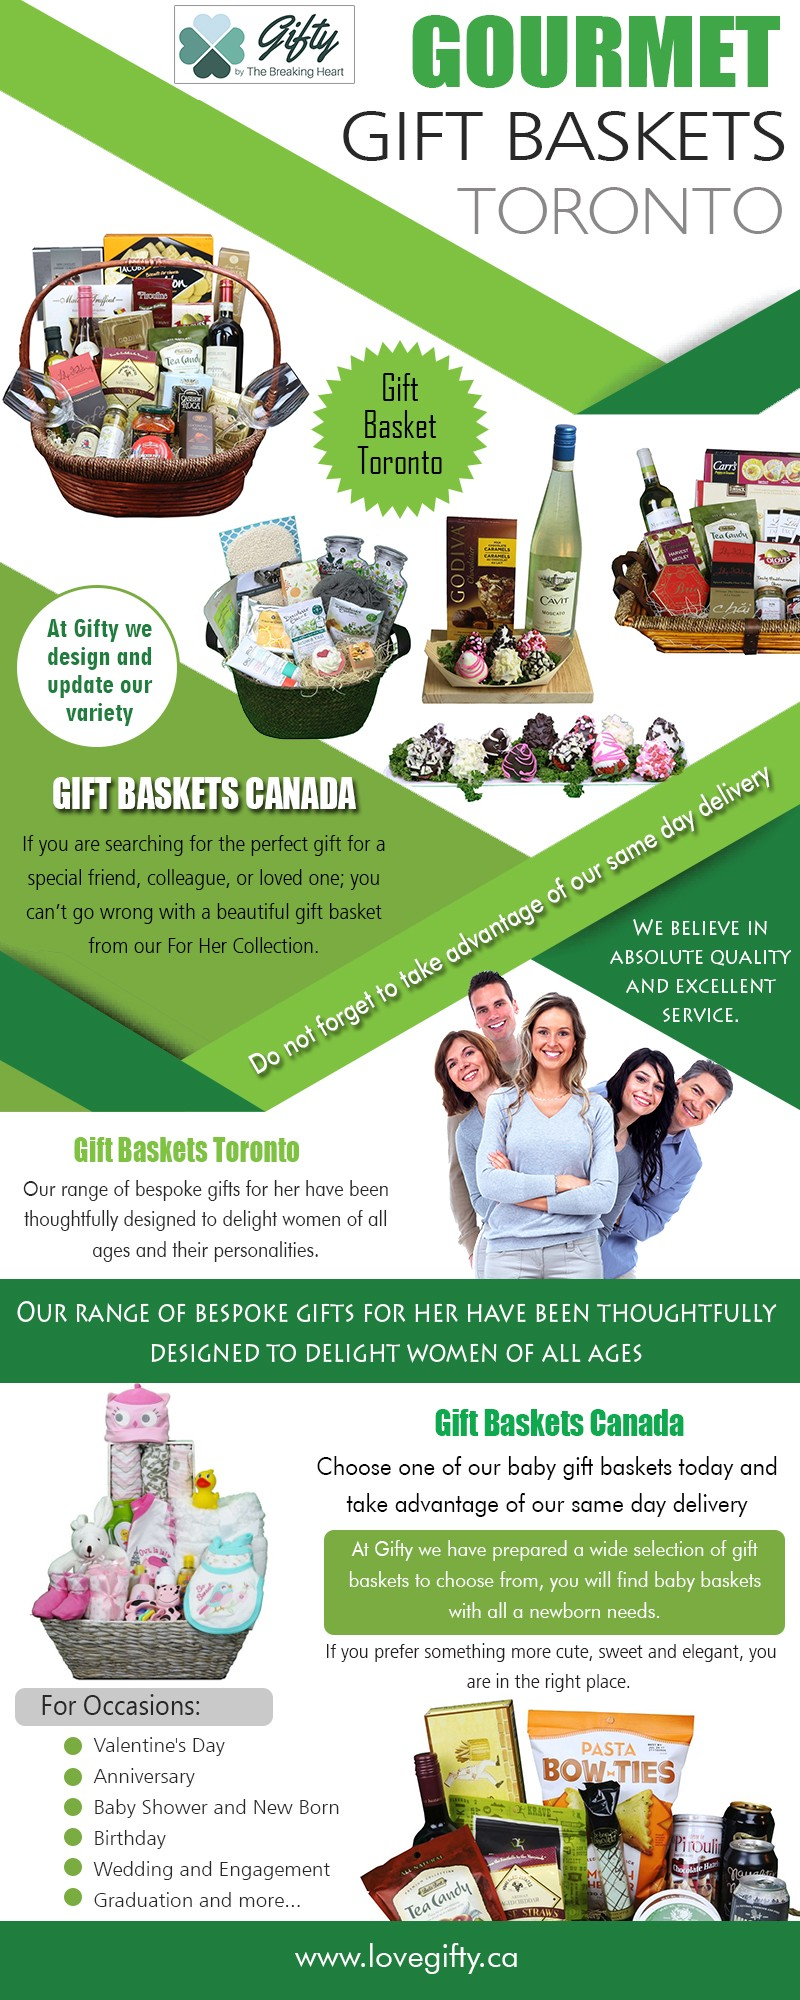 Gourmet gift baskets Toronto with high quality products for all occasions at https://lovegifty.ca/